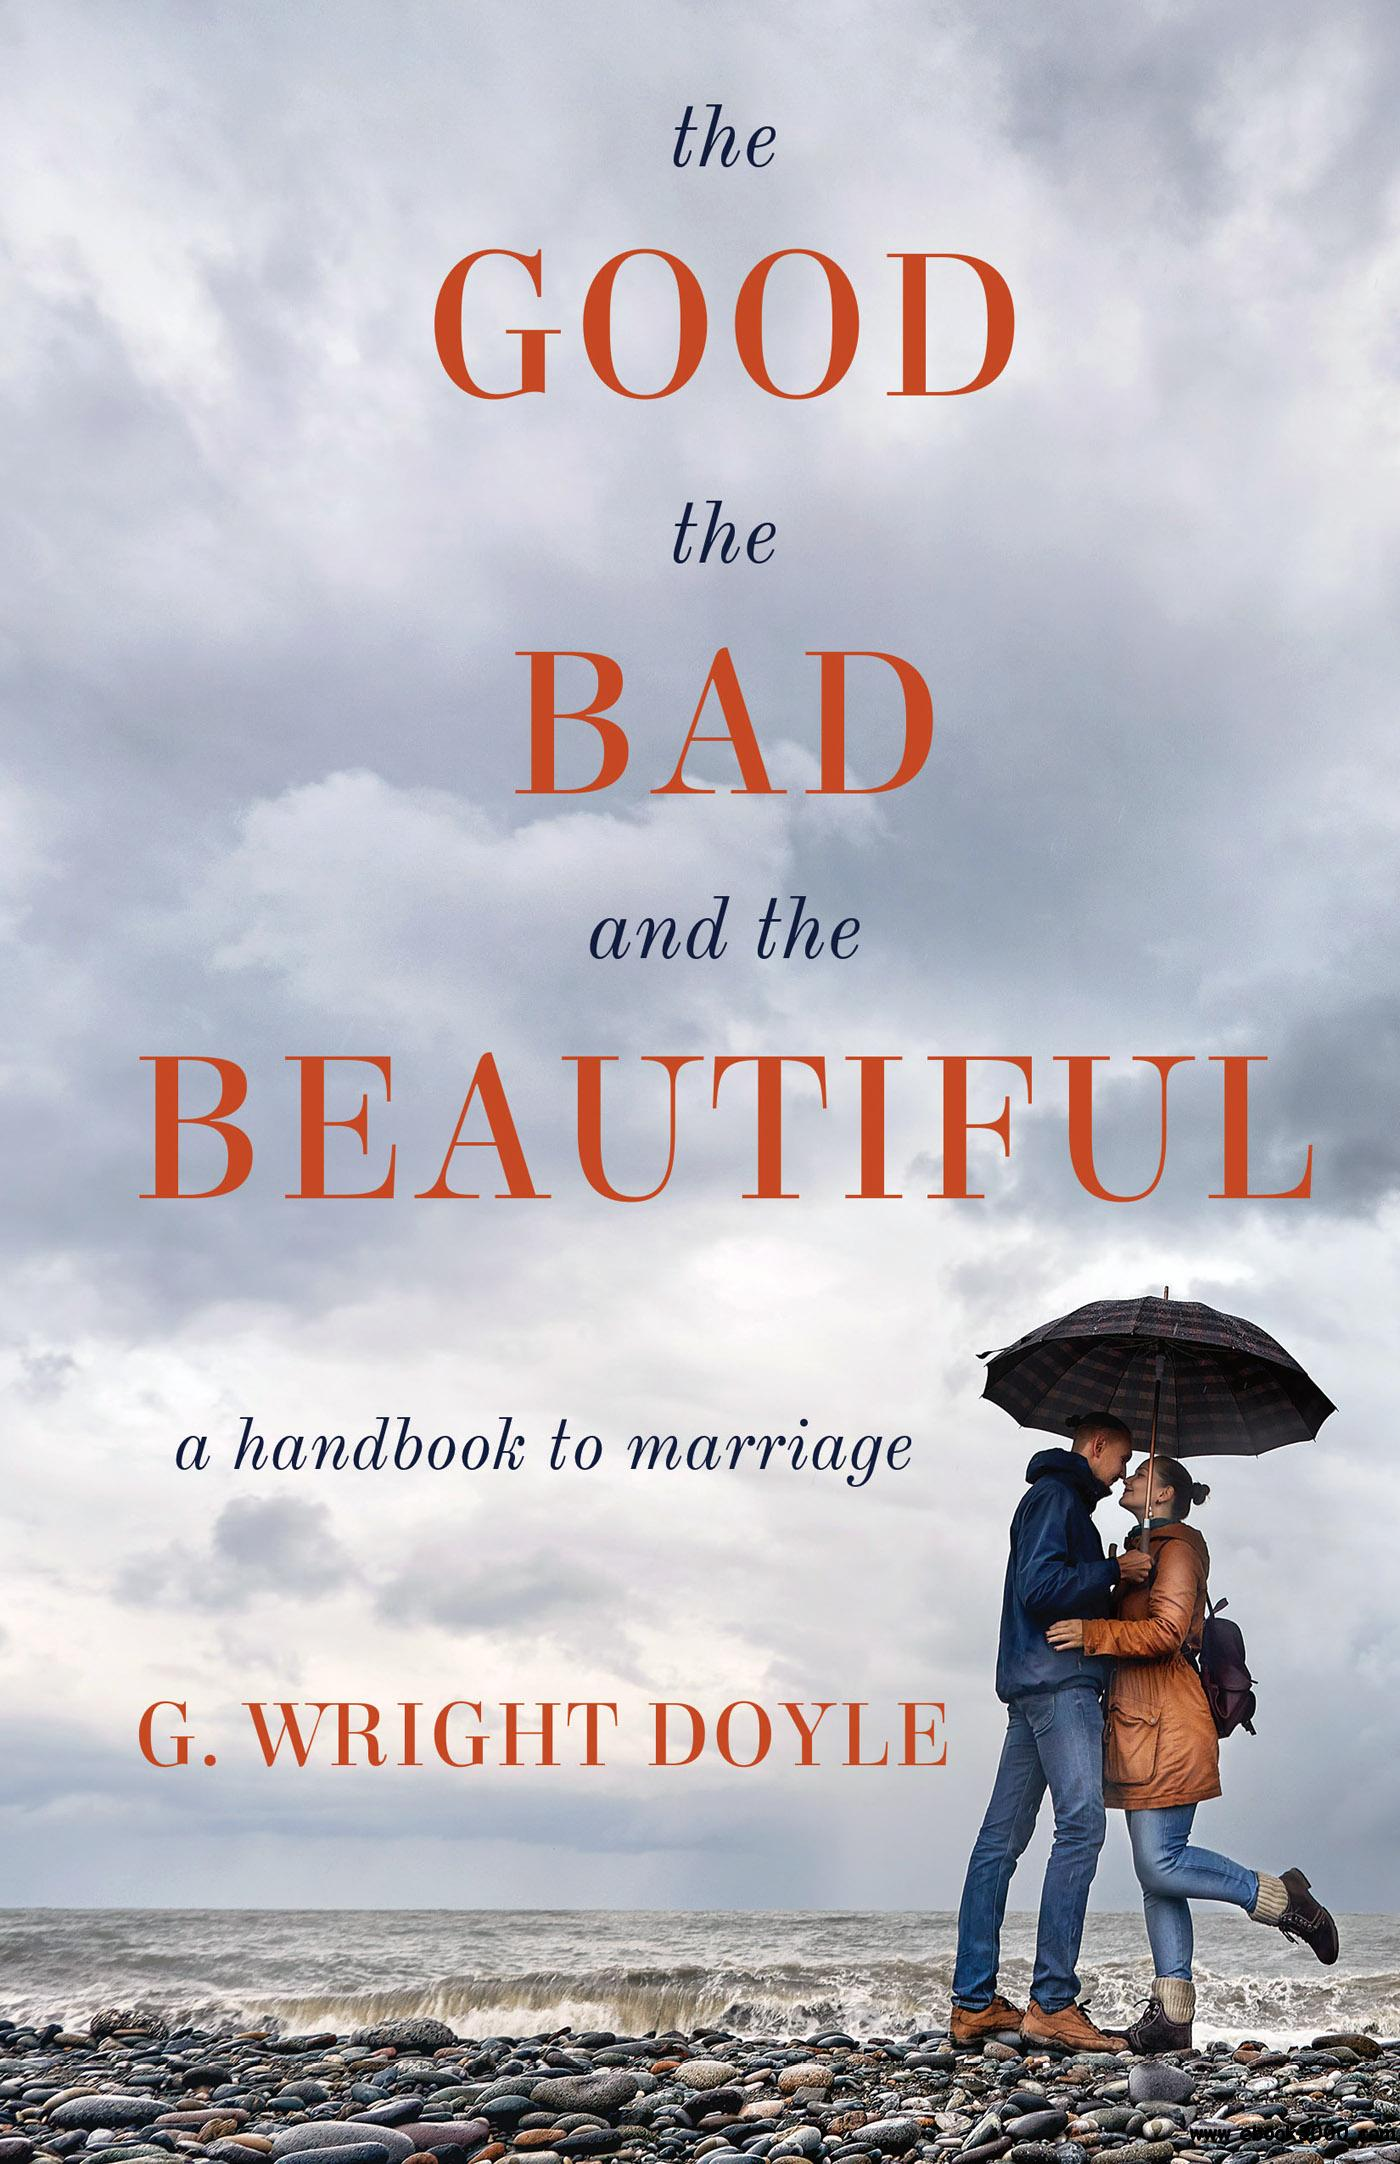 The Good, the Bad, and the Beautiful: A Handbook to Marriage